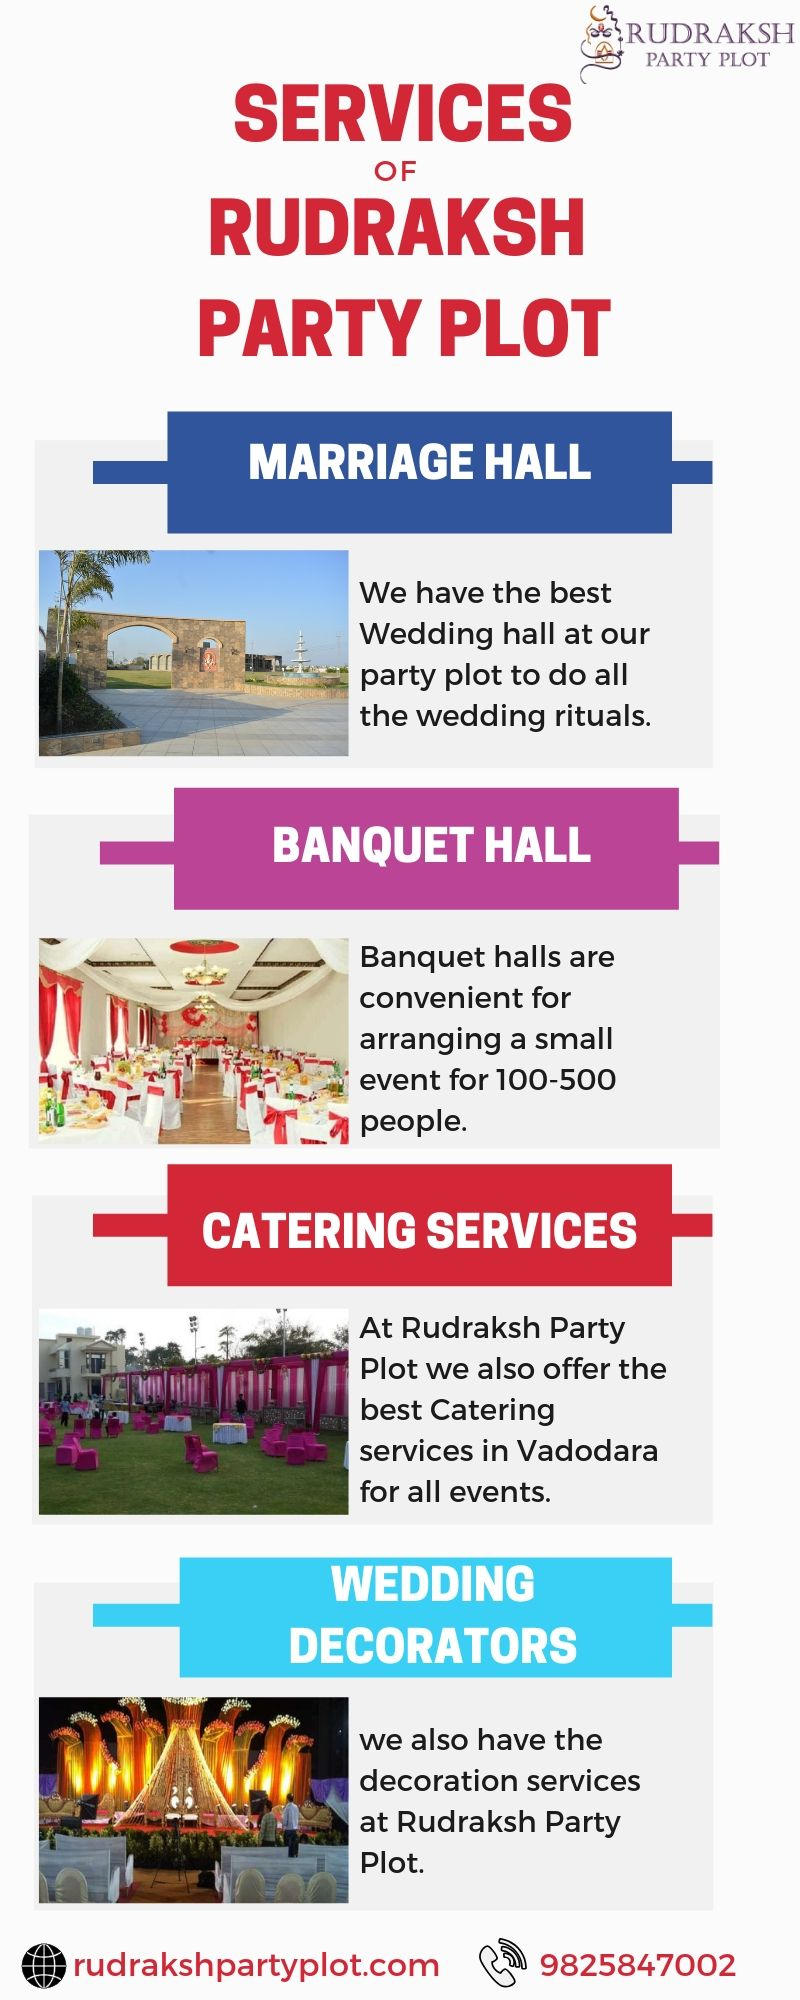 Rudraksh Banquet and Party Plot is the perfect place to